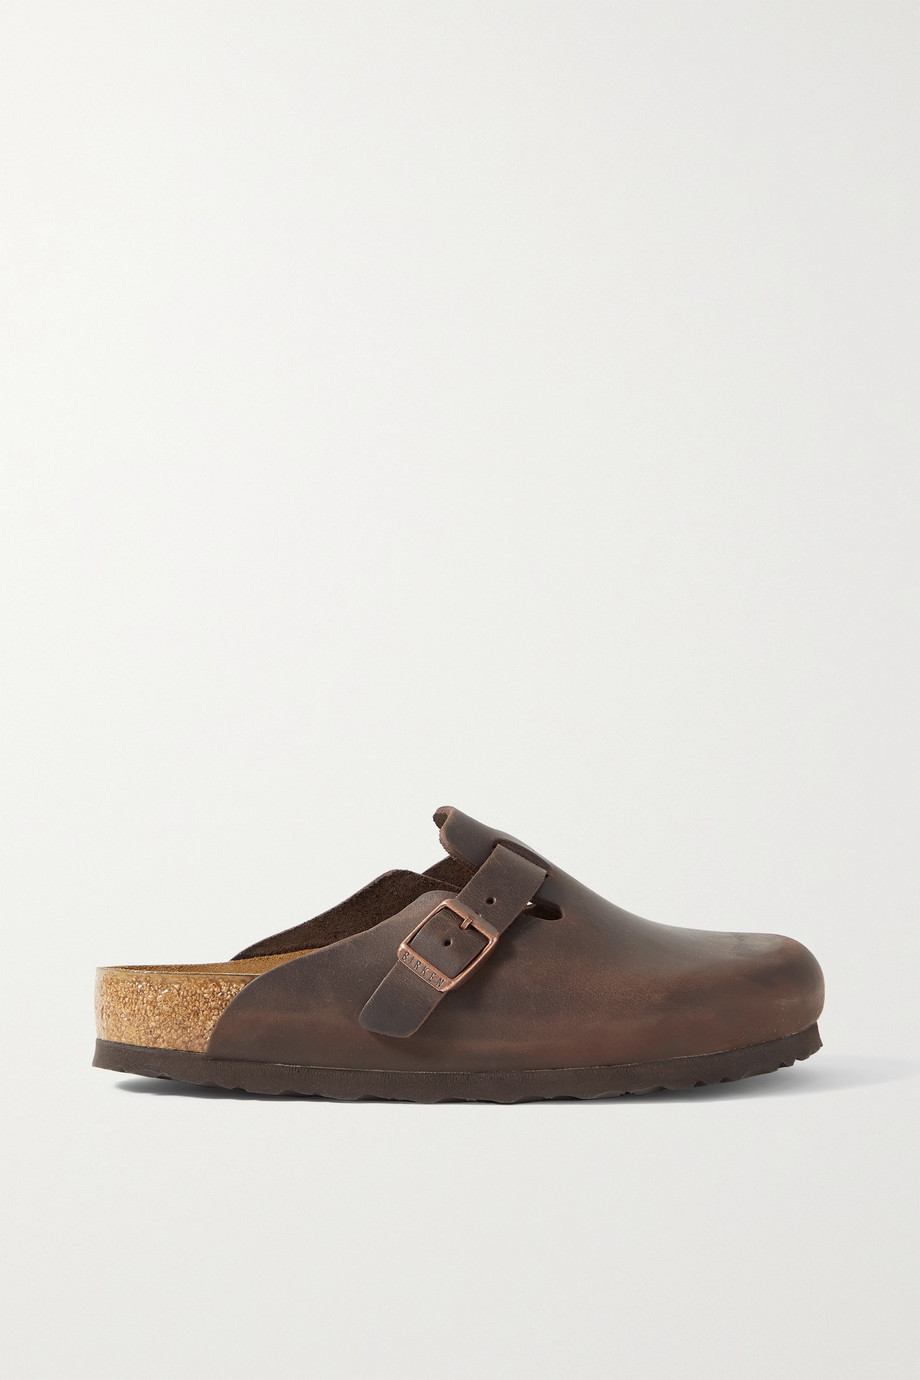 Birkenstock Boston leather slippers